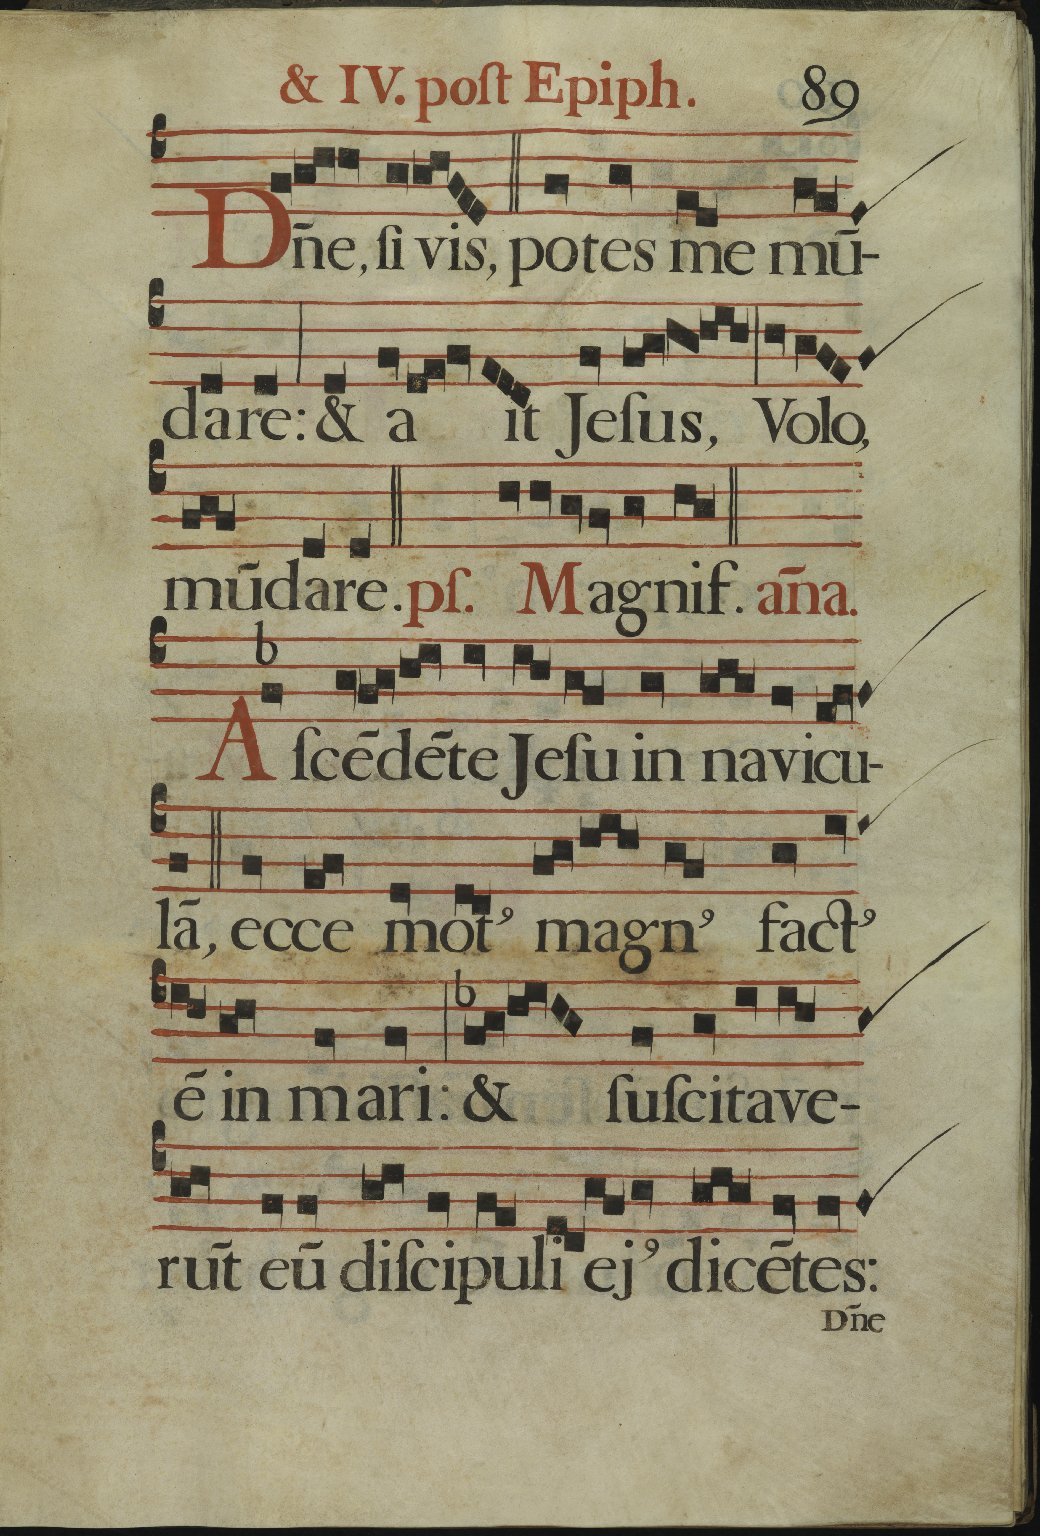 The Spanish Antiphoner. Page 89